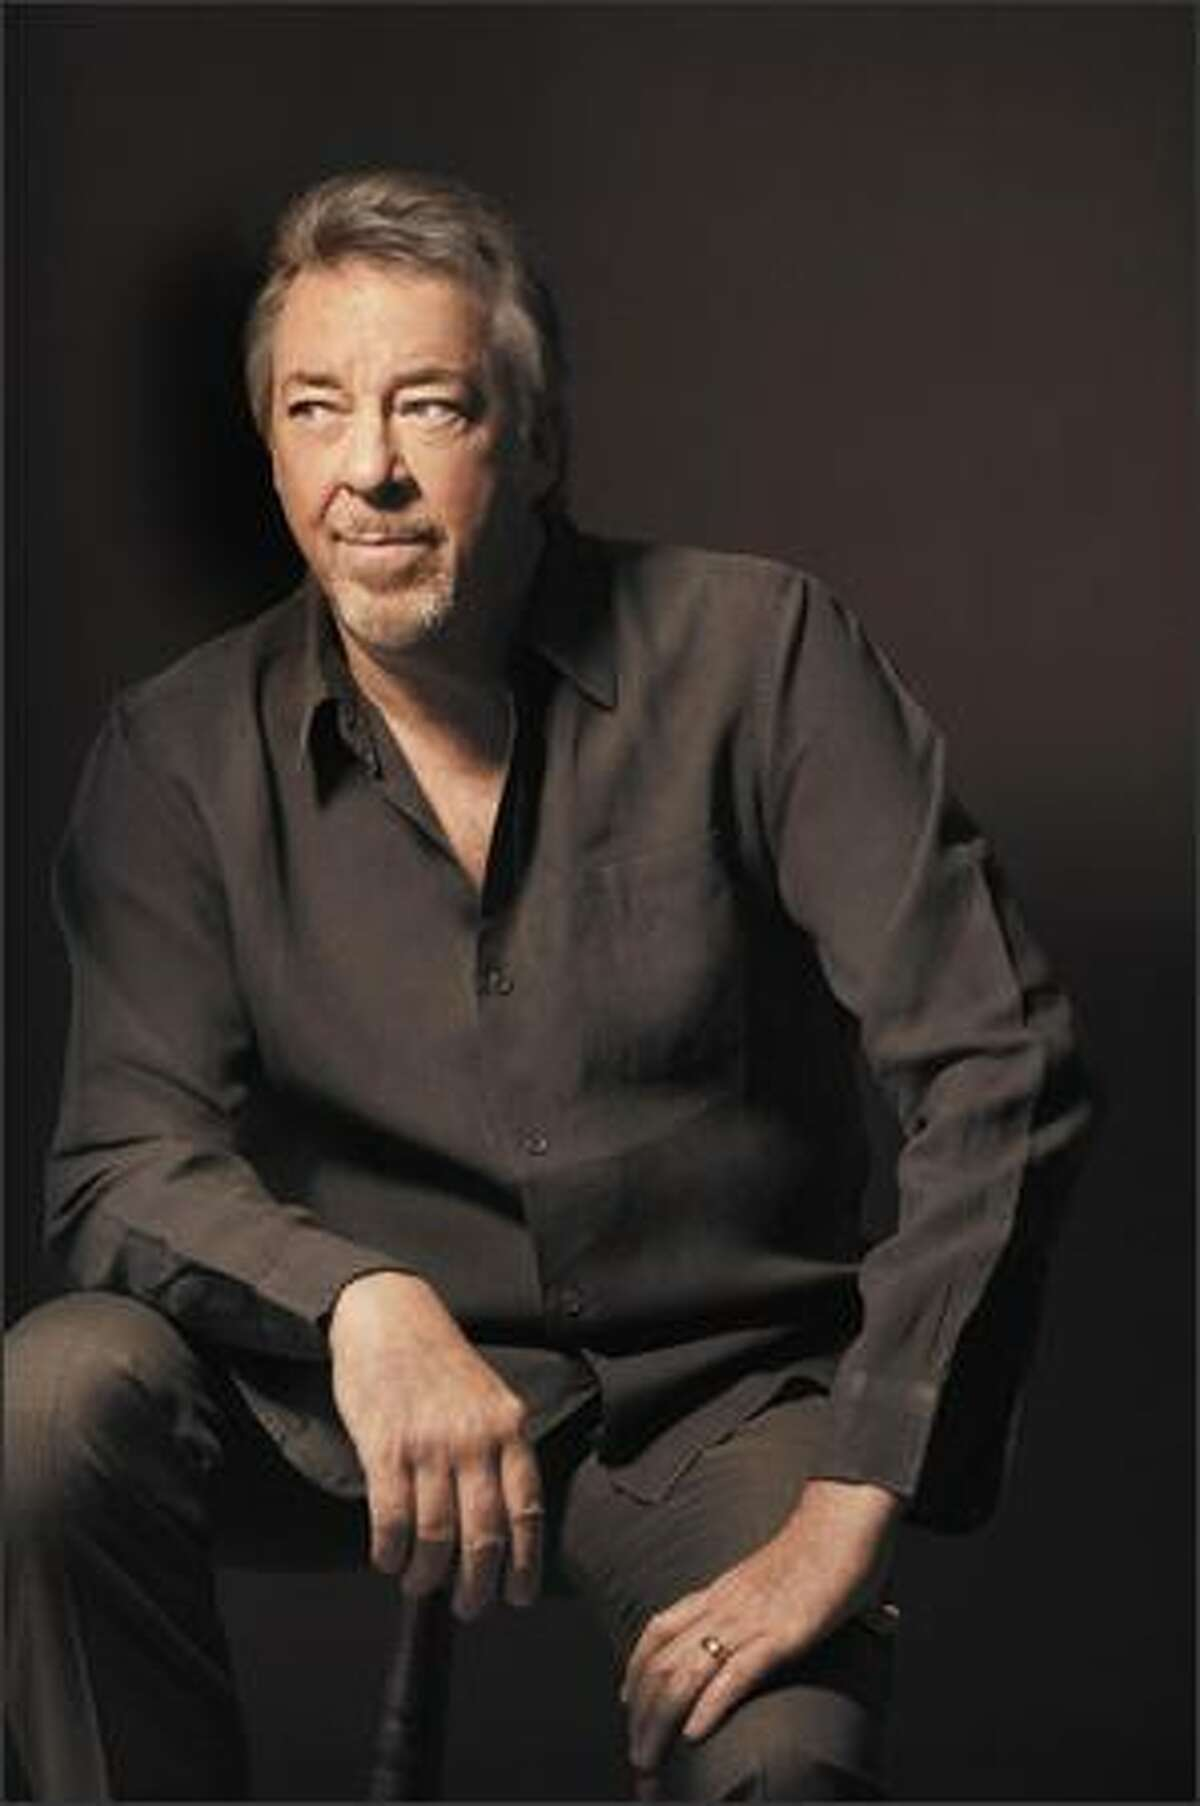 """Boz Scaggs says his album is a """"progressive, experimental effort ... along the lines of some of the ideas that Gil Evans explored."""""""